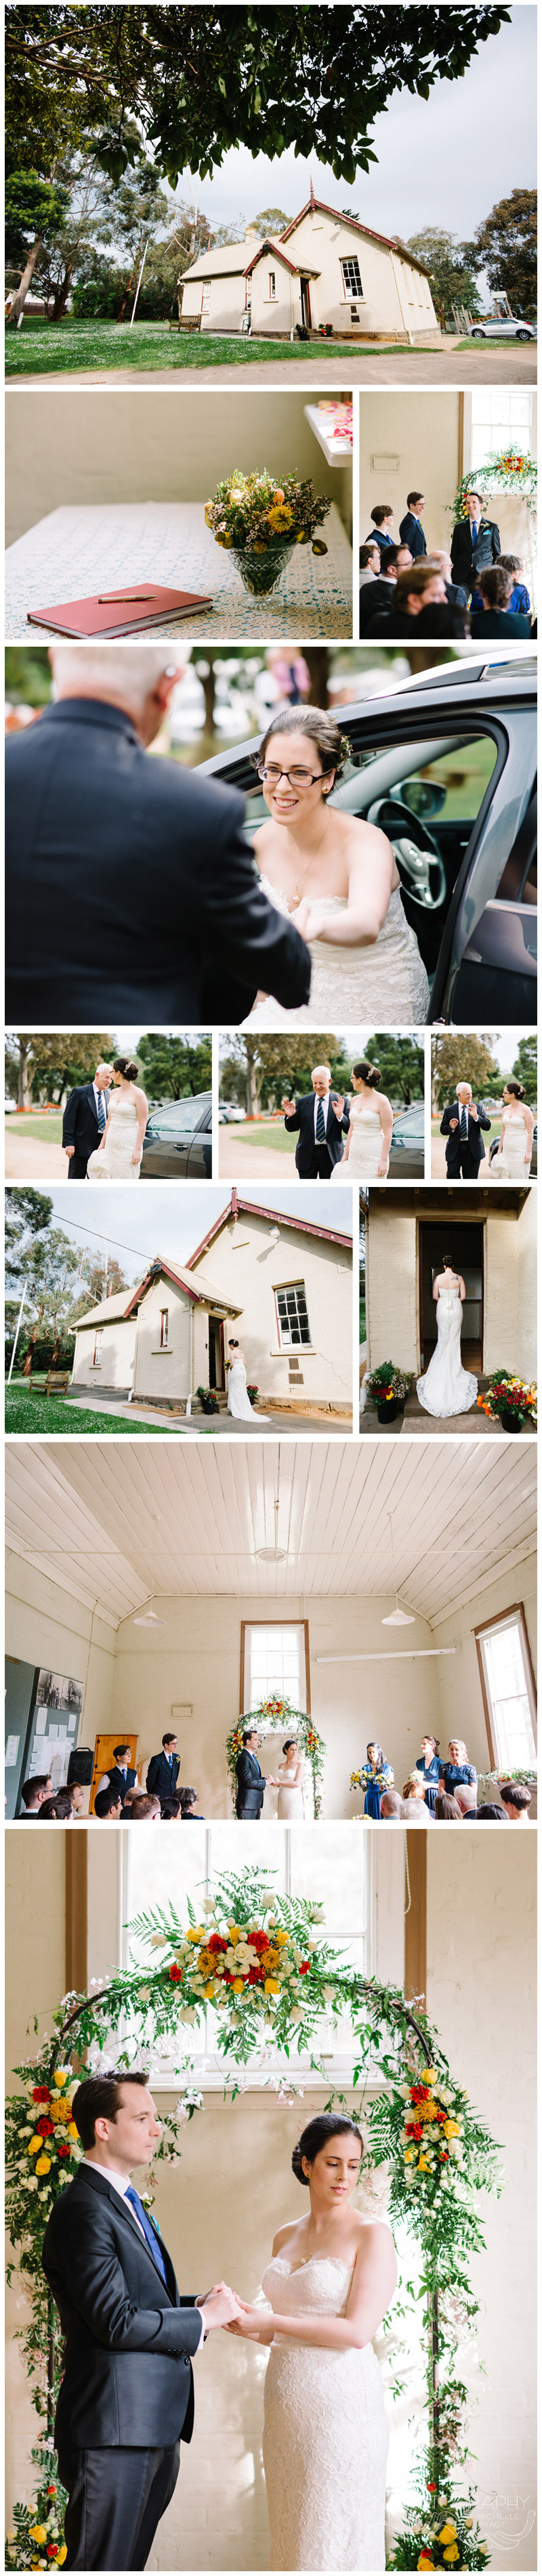 Mornington Peninsula wedding venue